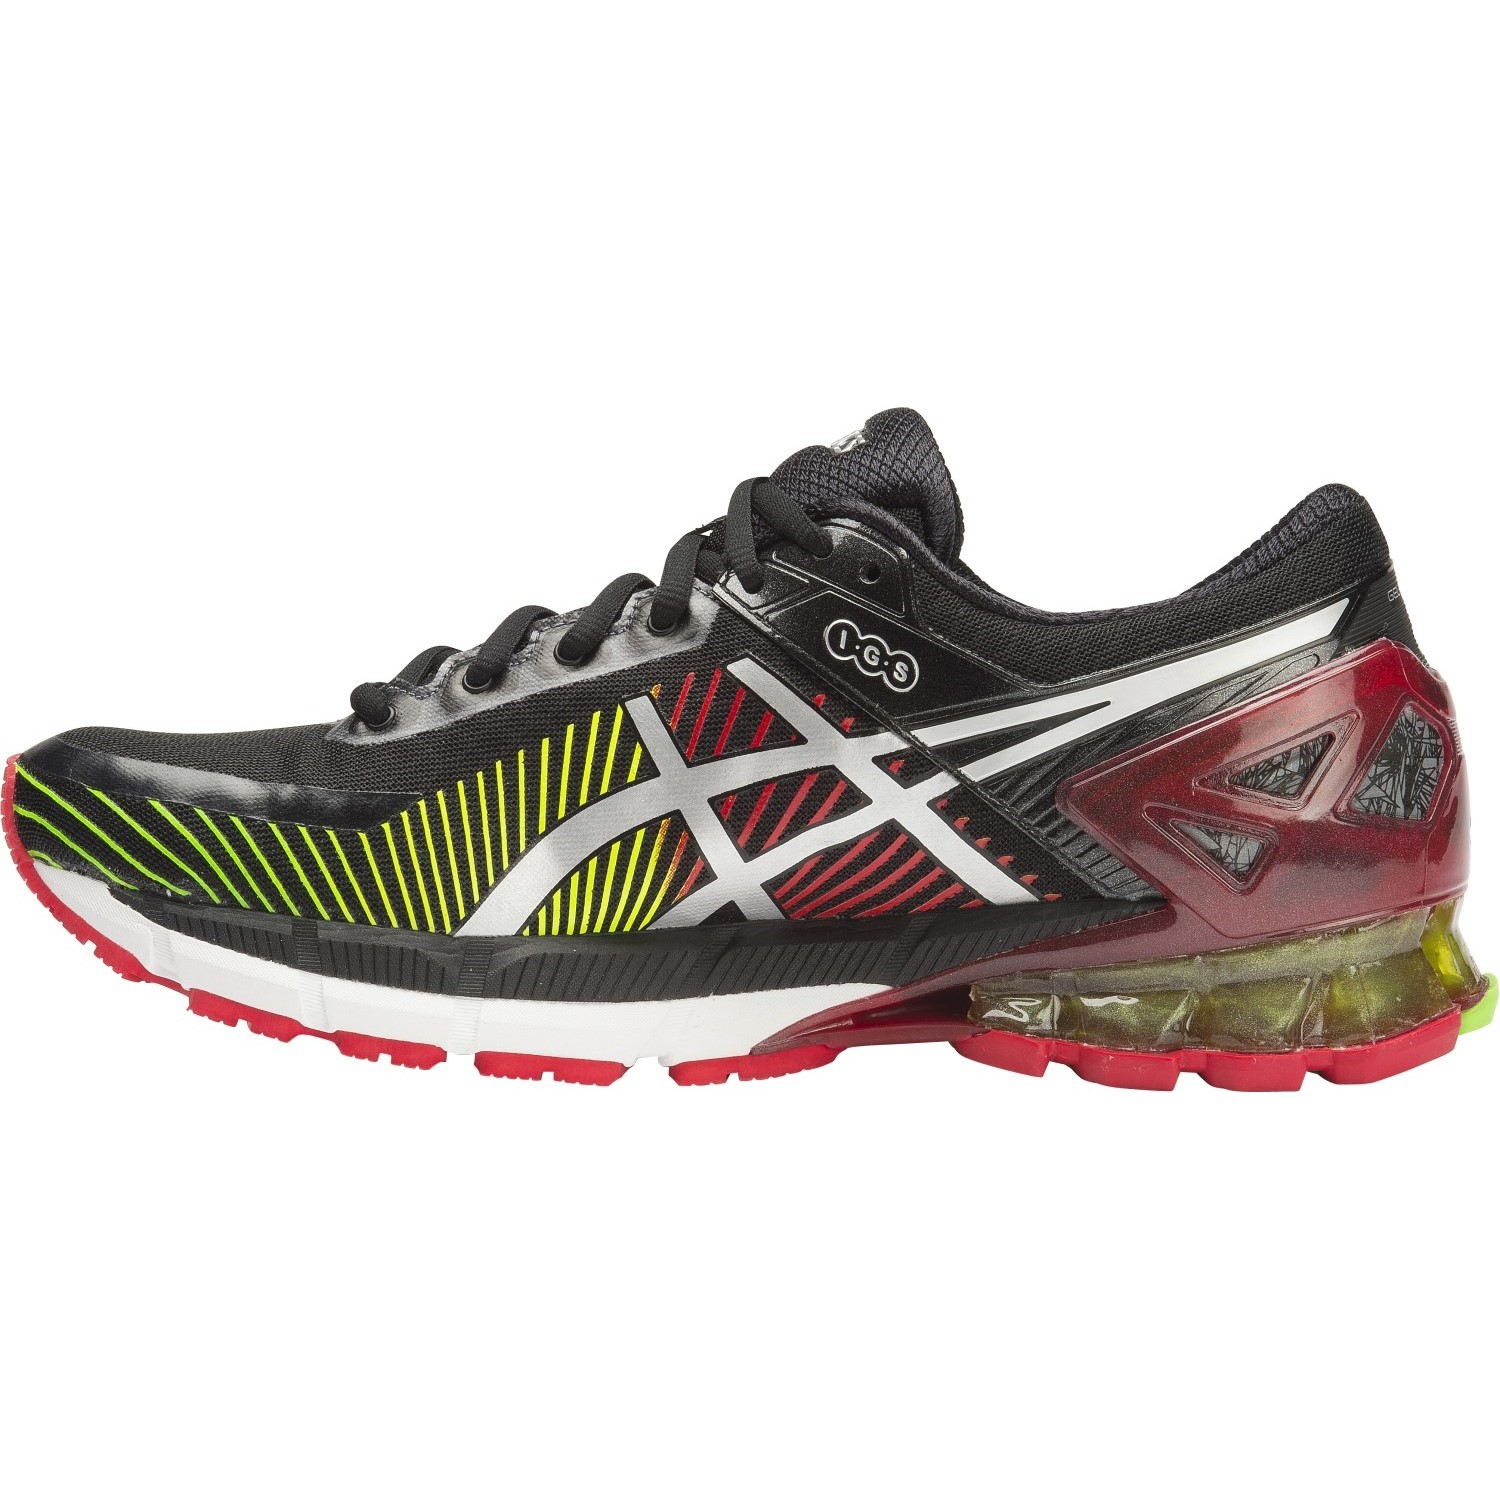 asics kinsei 6 mens running shoes black silver red. Black Bedroom Furniture Sets. Home Design Ideas